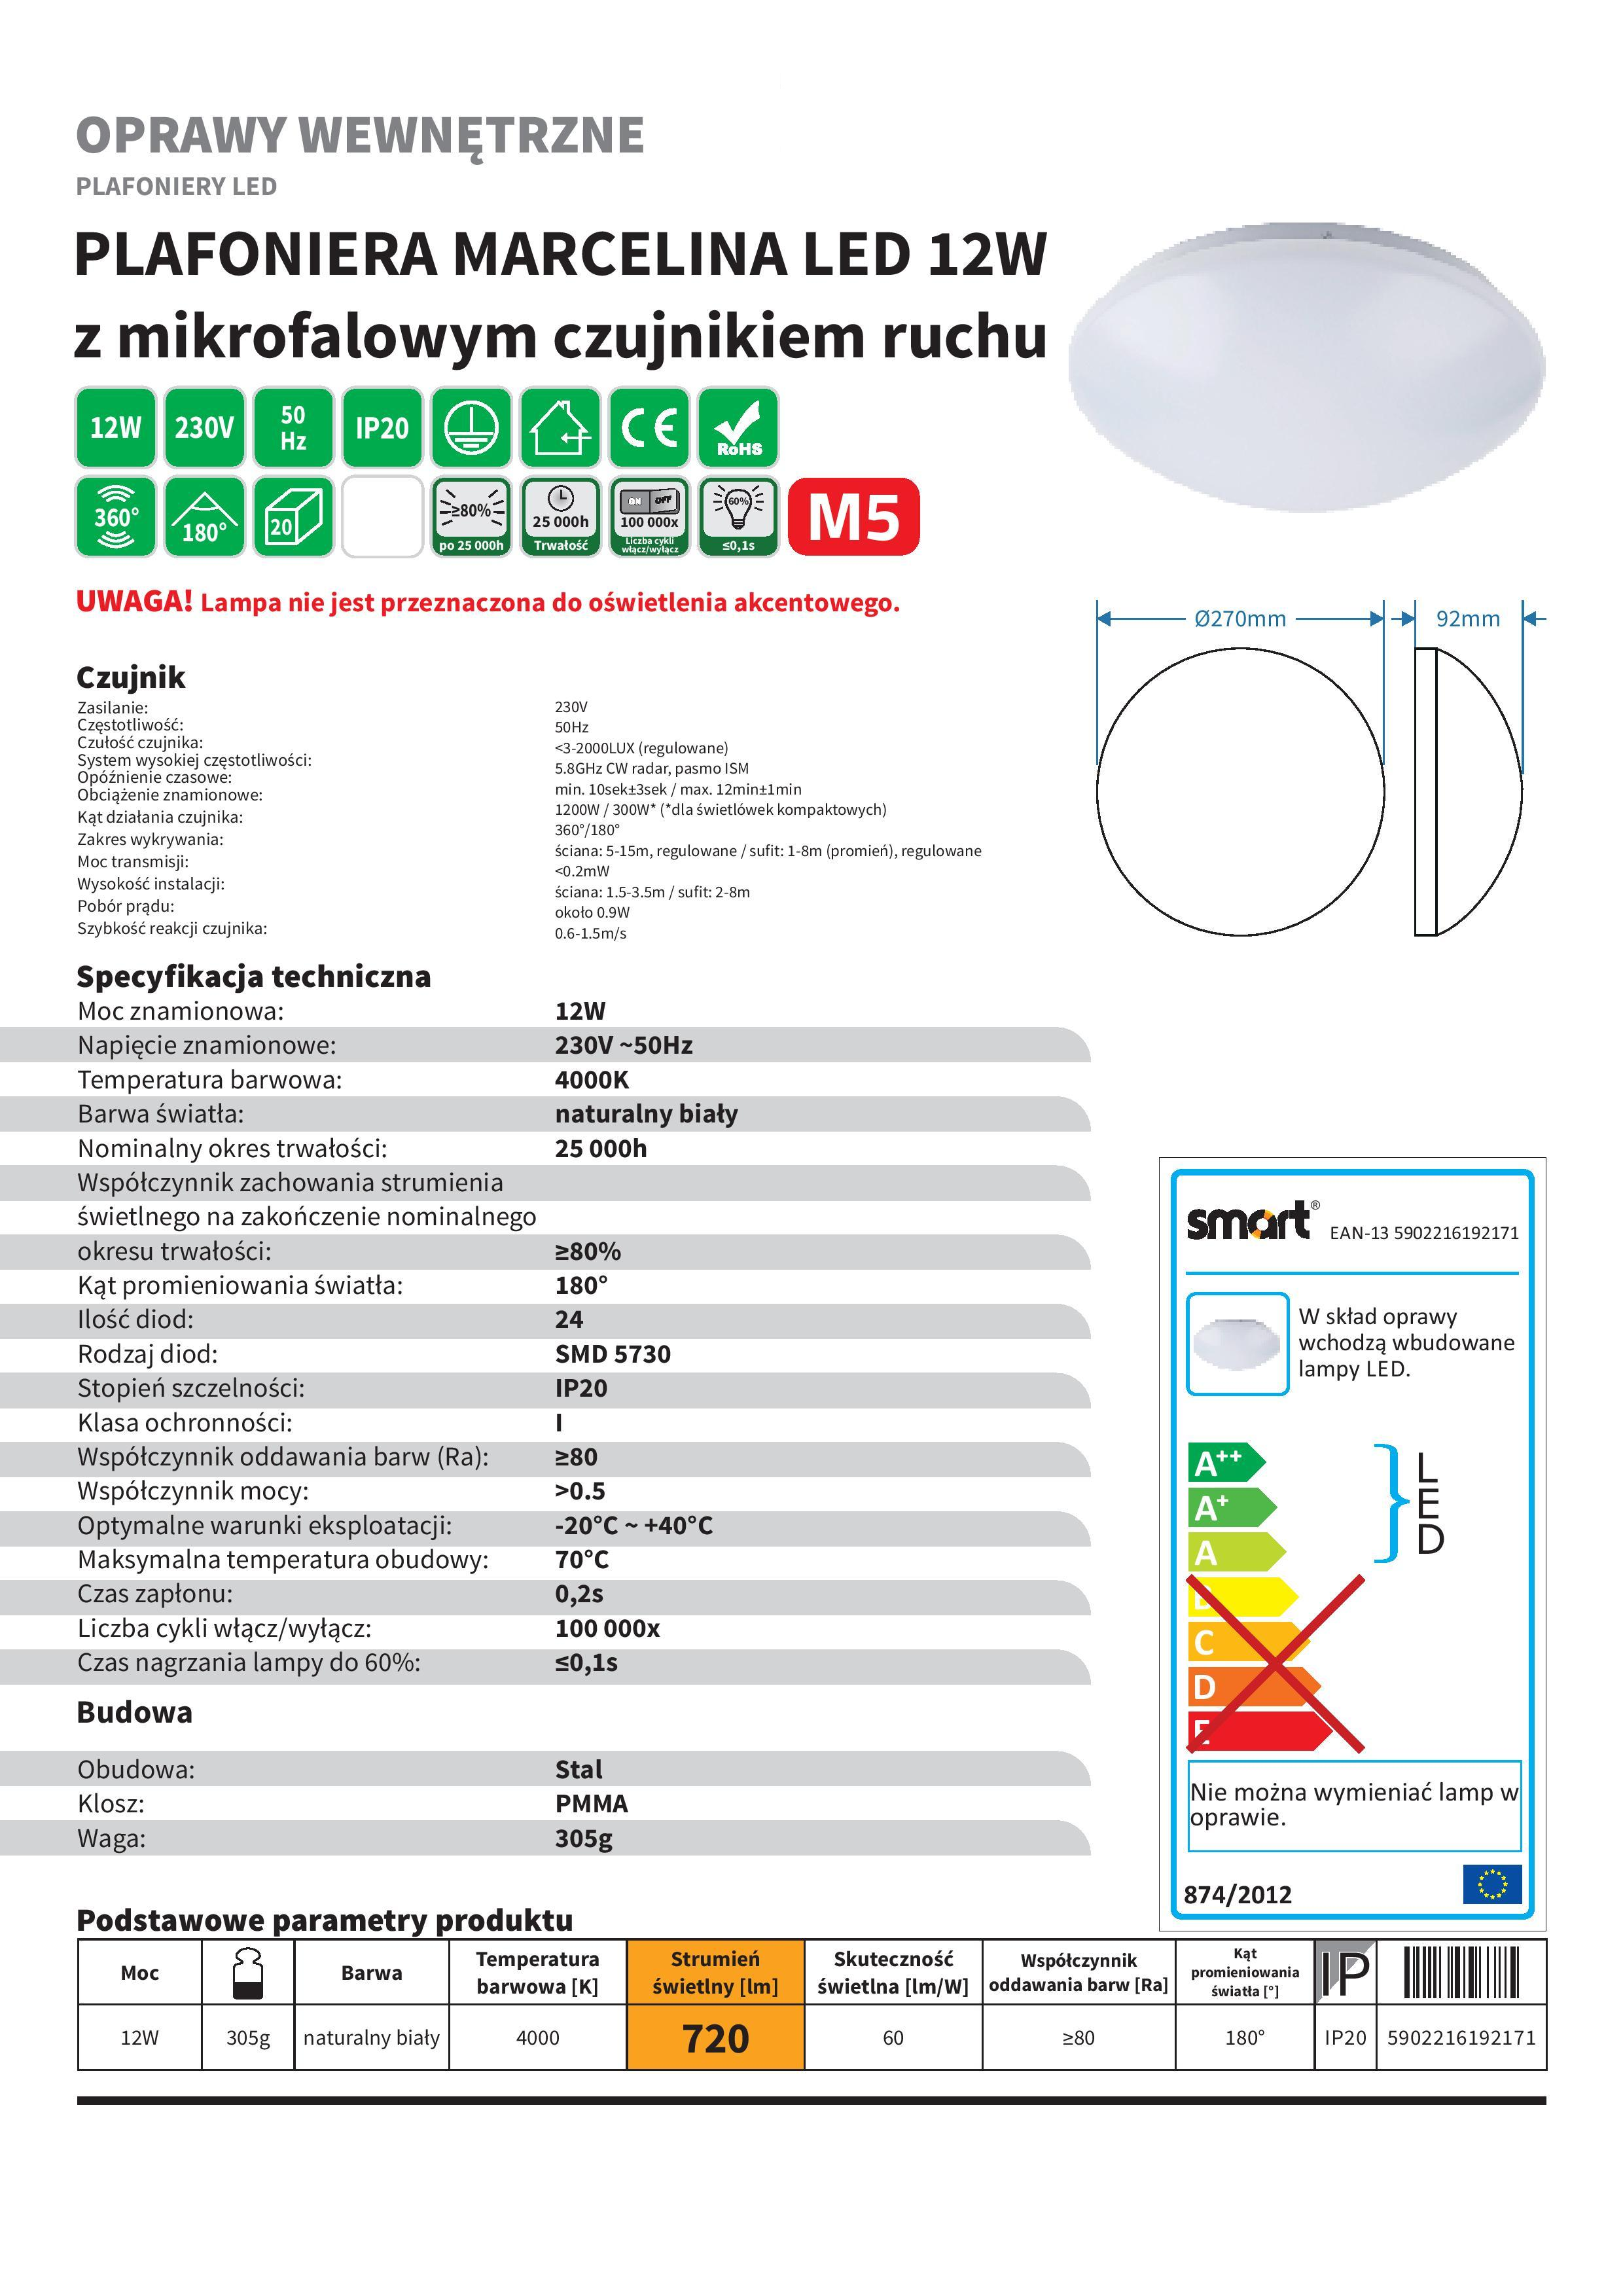 Plafoniera LED, LED overhead lights, LED-Deckenbeleuchtung, Светодиодные плафон, LED stropní svítidla, MArcelina